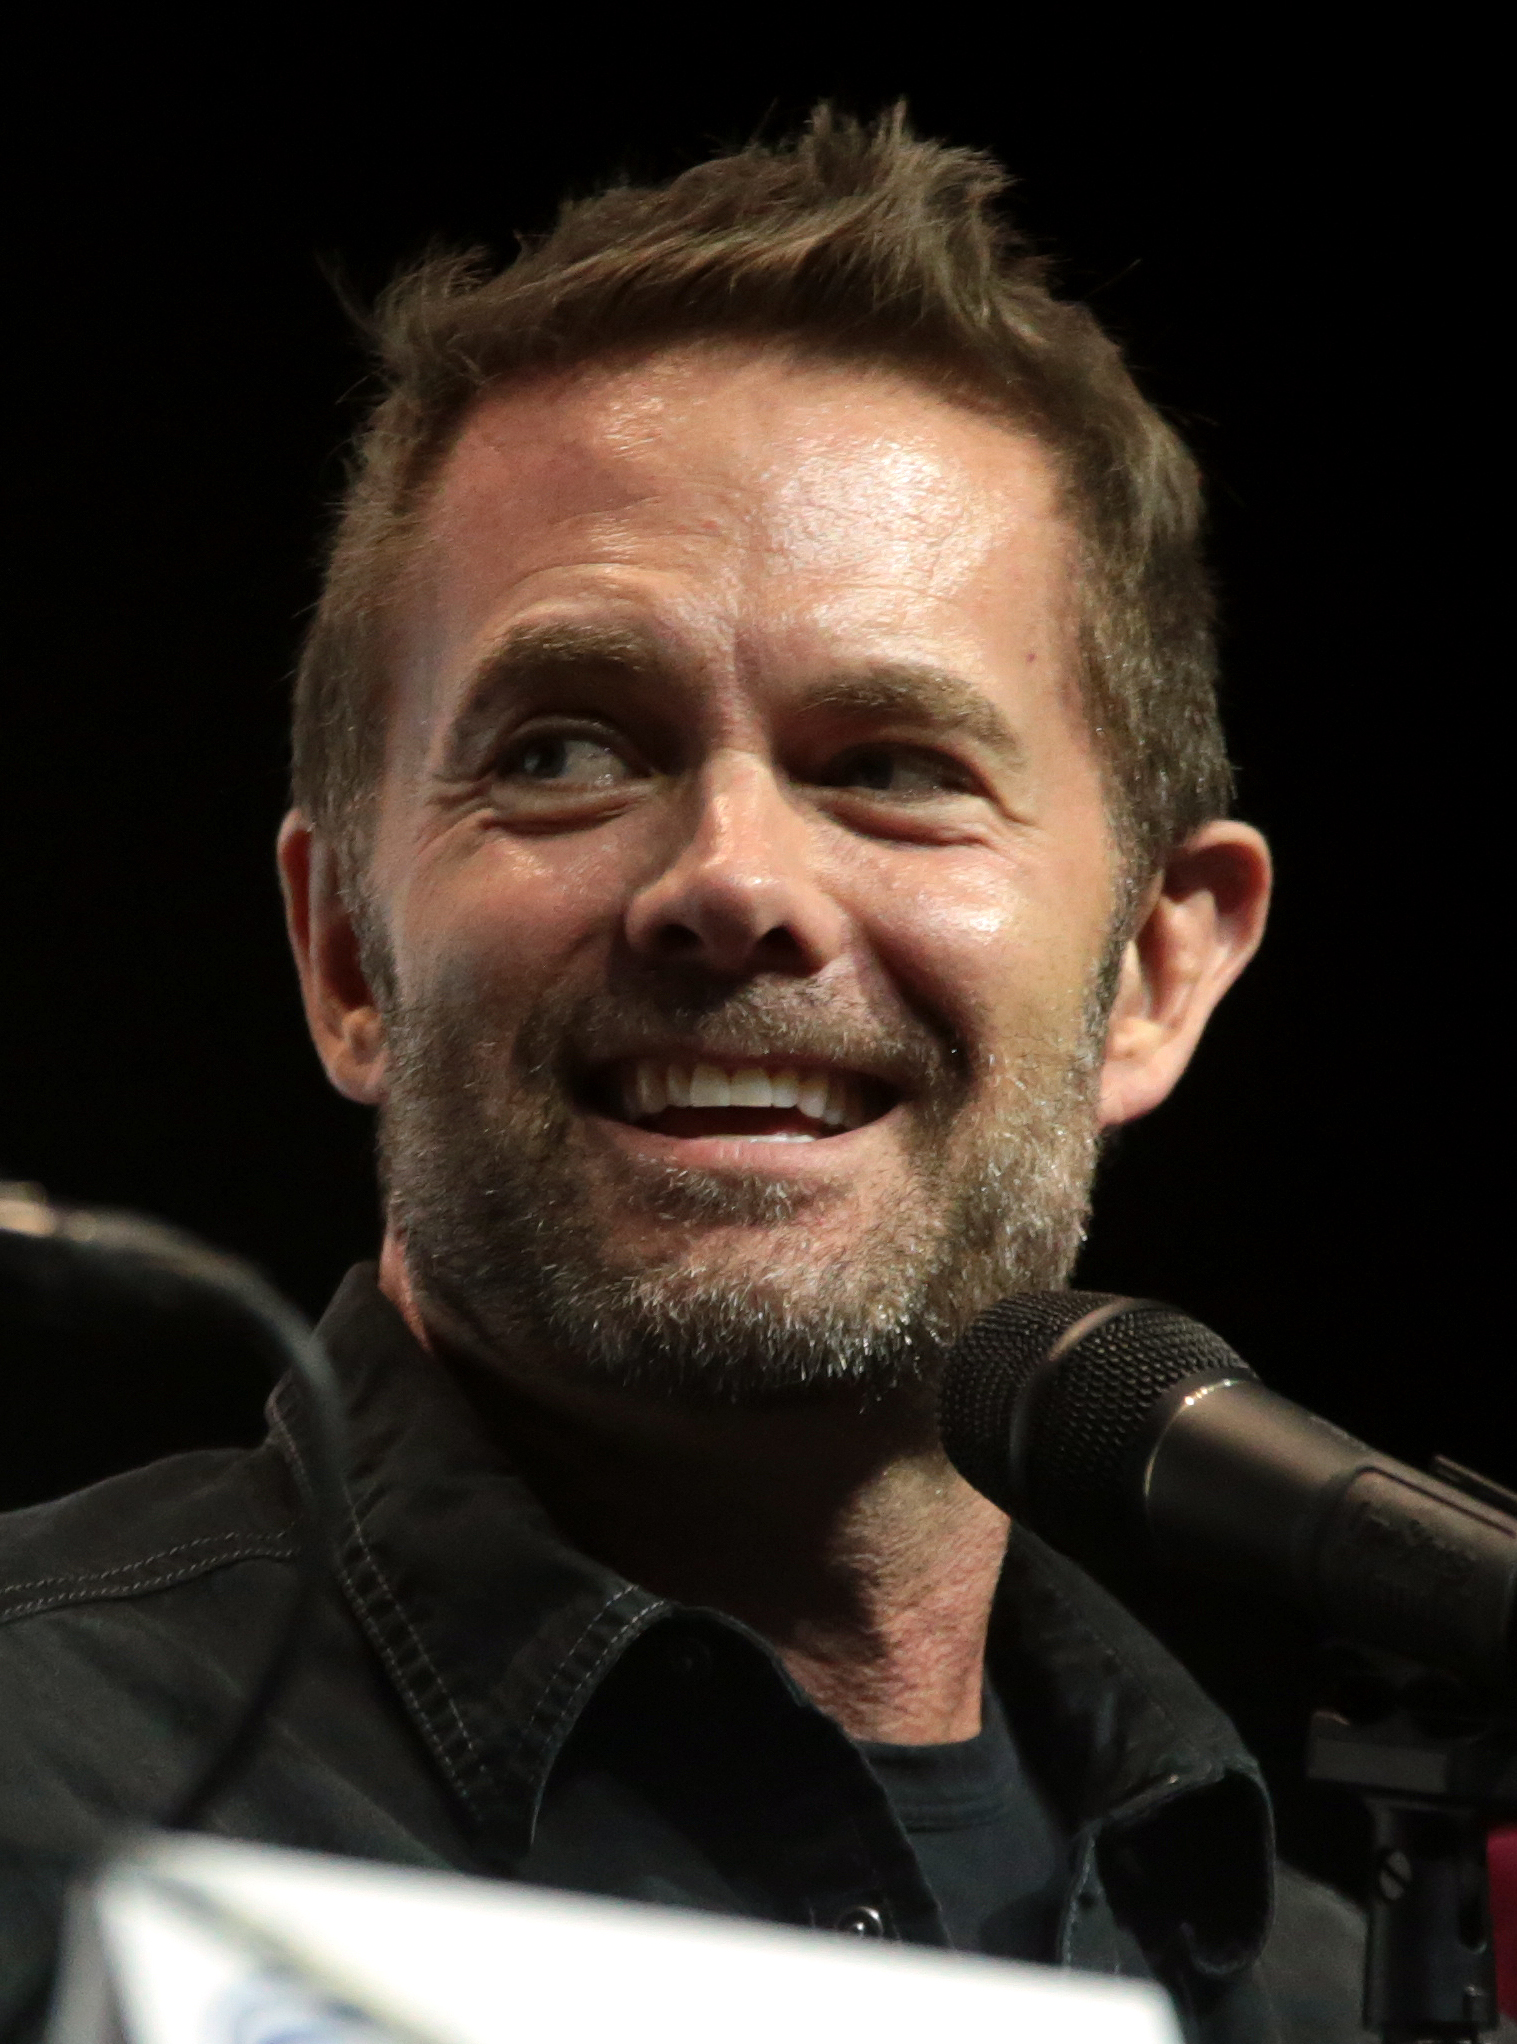 The 53-year old son of father (?) and mother(?) Garret Dillahunt in 2018 photo. Garret Dillahunt earned a  million dollar salary - leaving the net worth at 4 million in 2018